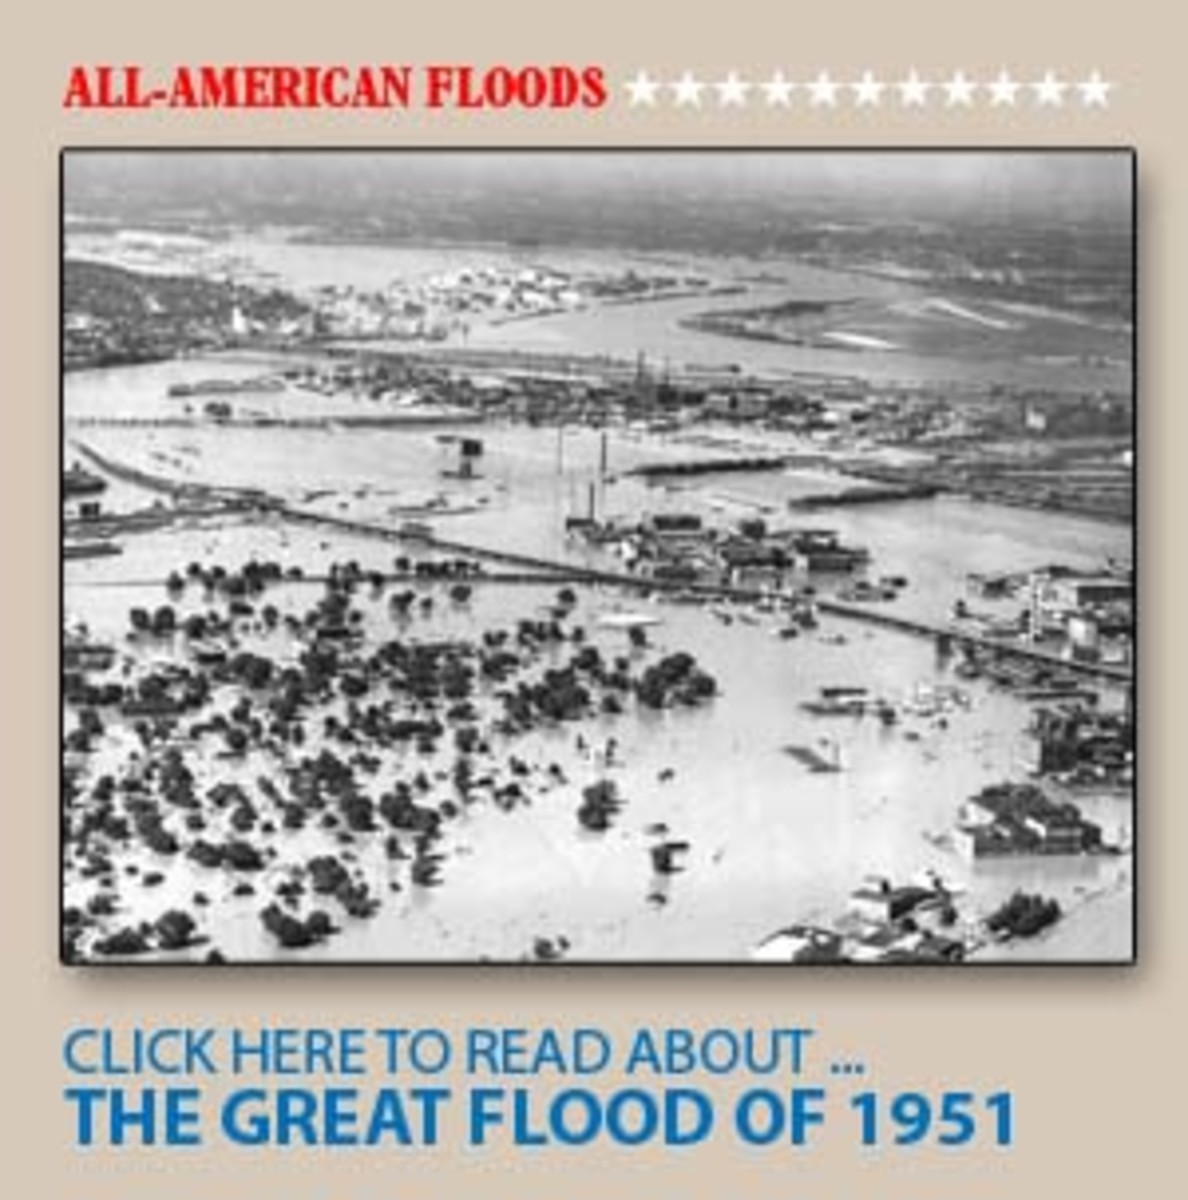 FLOOD_OF_1951